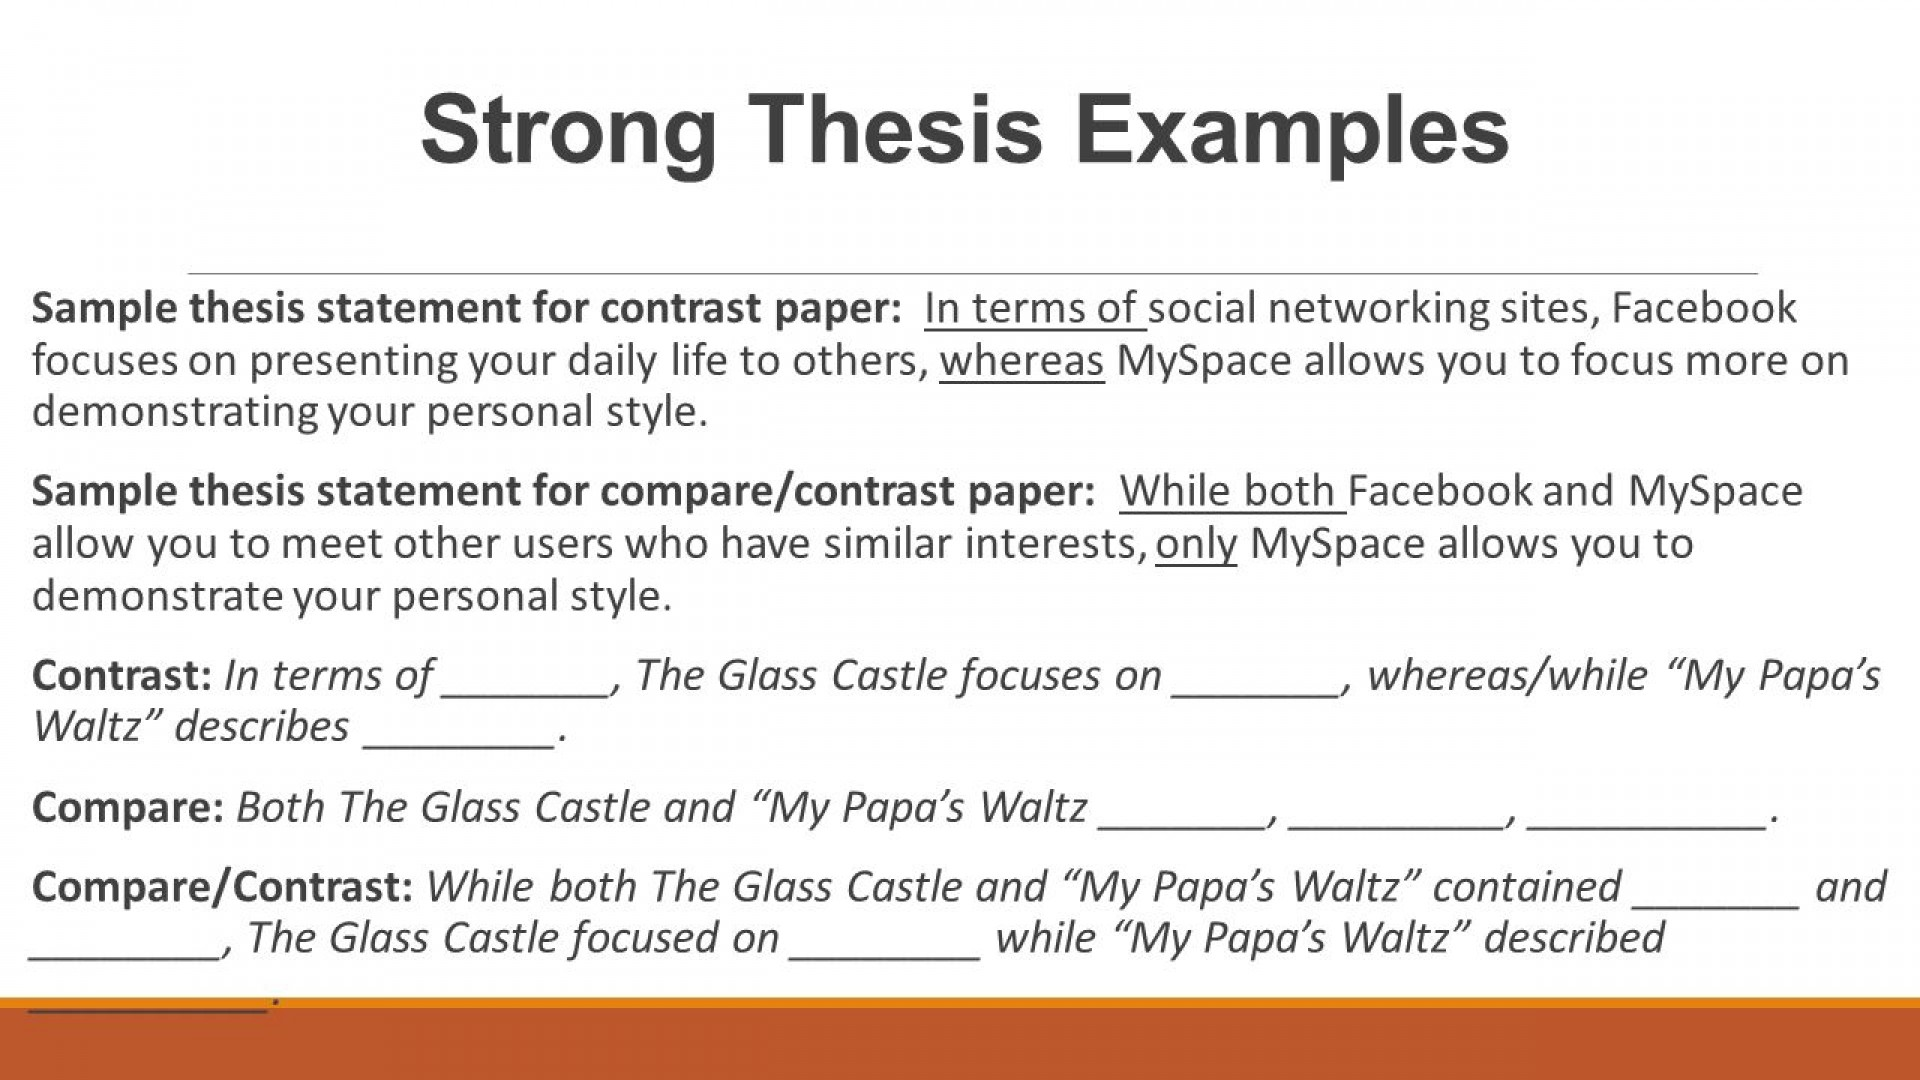 001 Essay Example Compare And Contrast Sample Paper Comparecontrast Thesis Statement For Argumentative On Social Media Shocking Generator How To Make A 1920